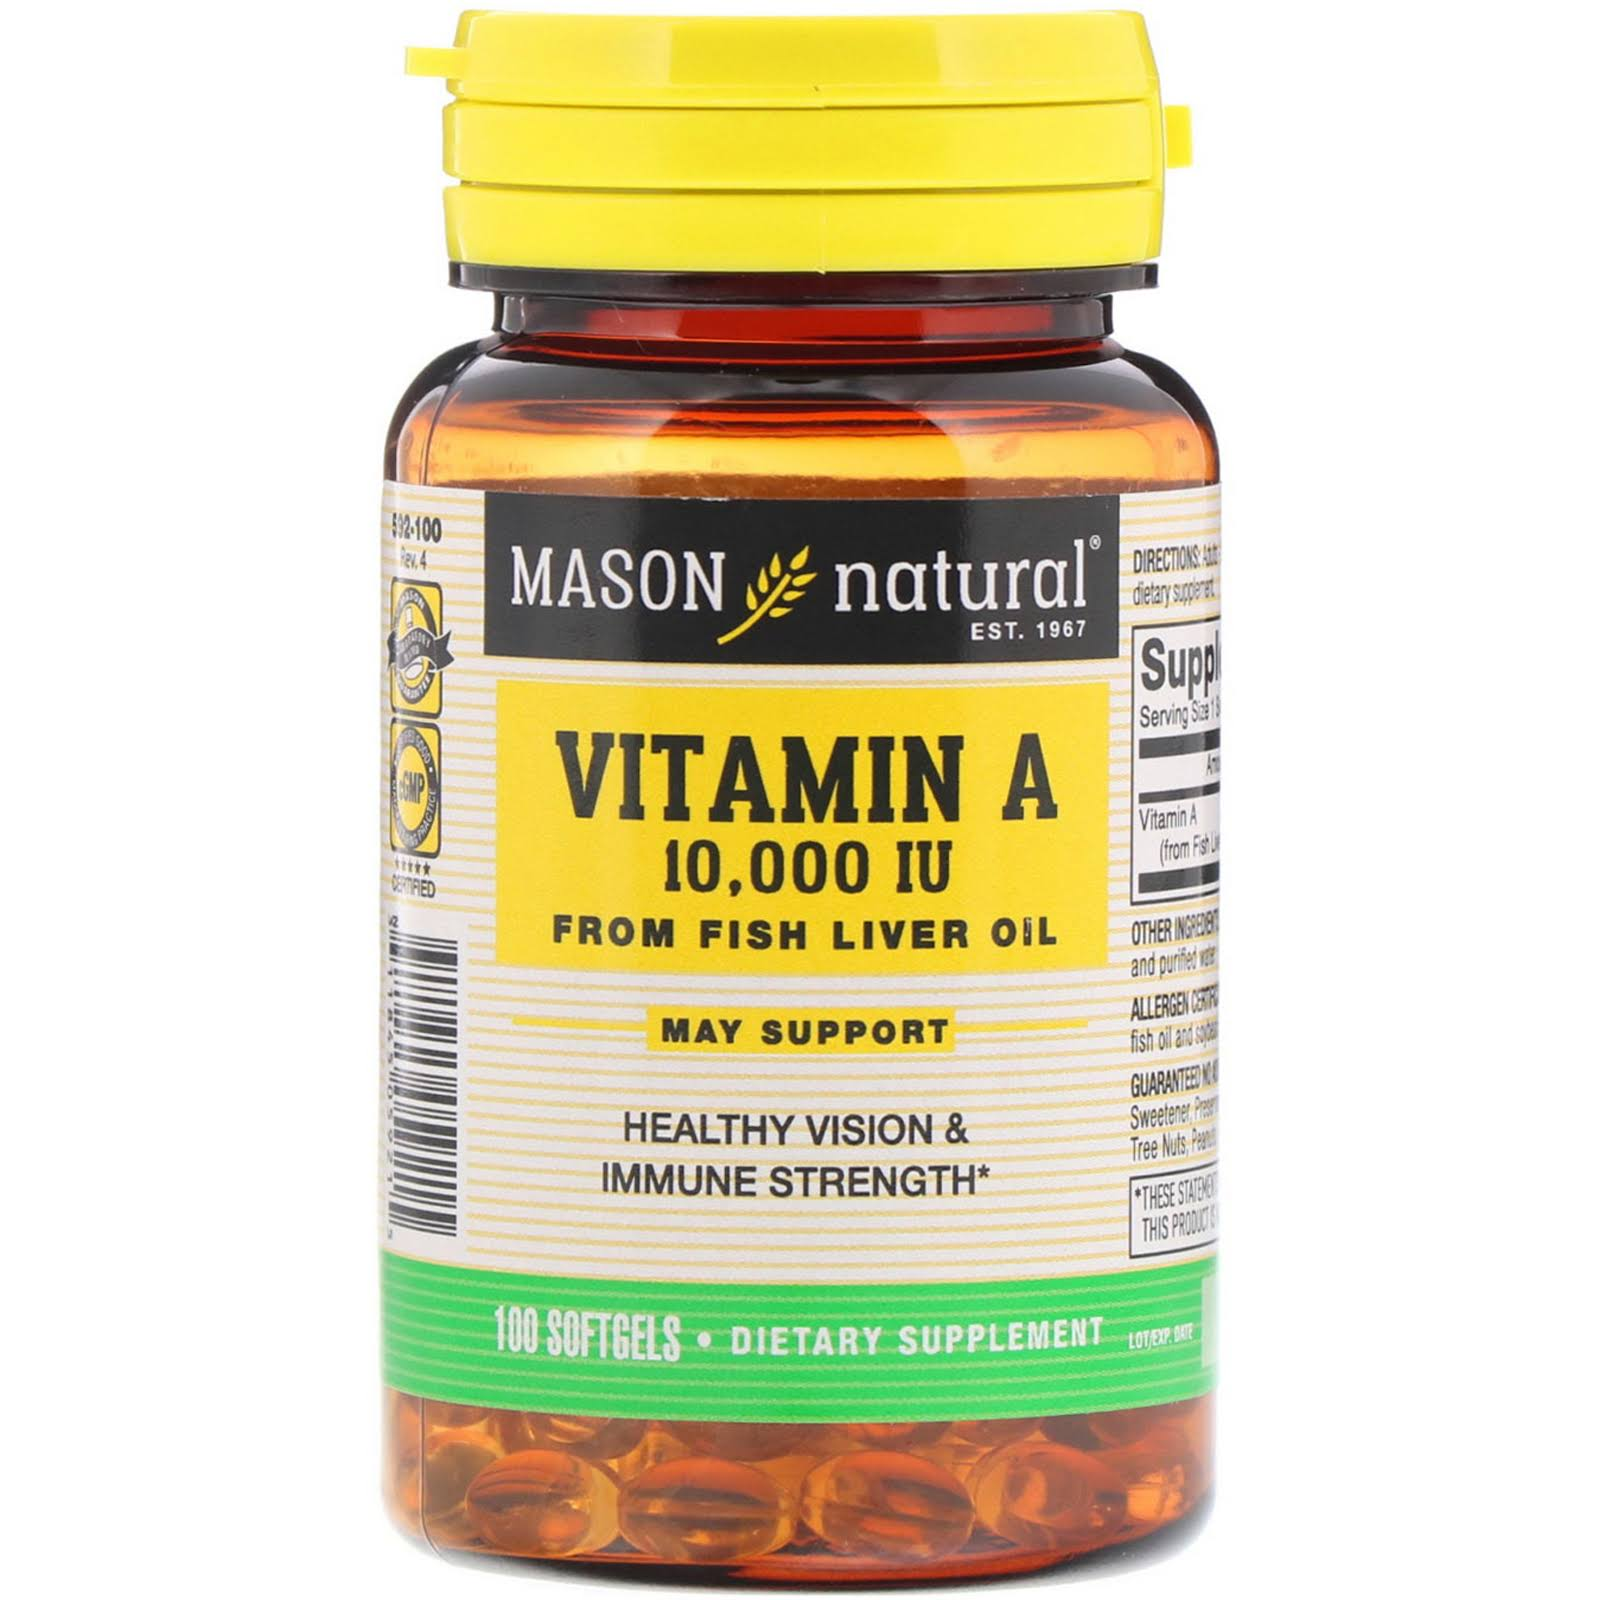 Mason Natural Vitamin A-10,000 IU Dietary Supplement - From Fish Liver Oil, 100softgels